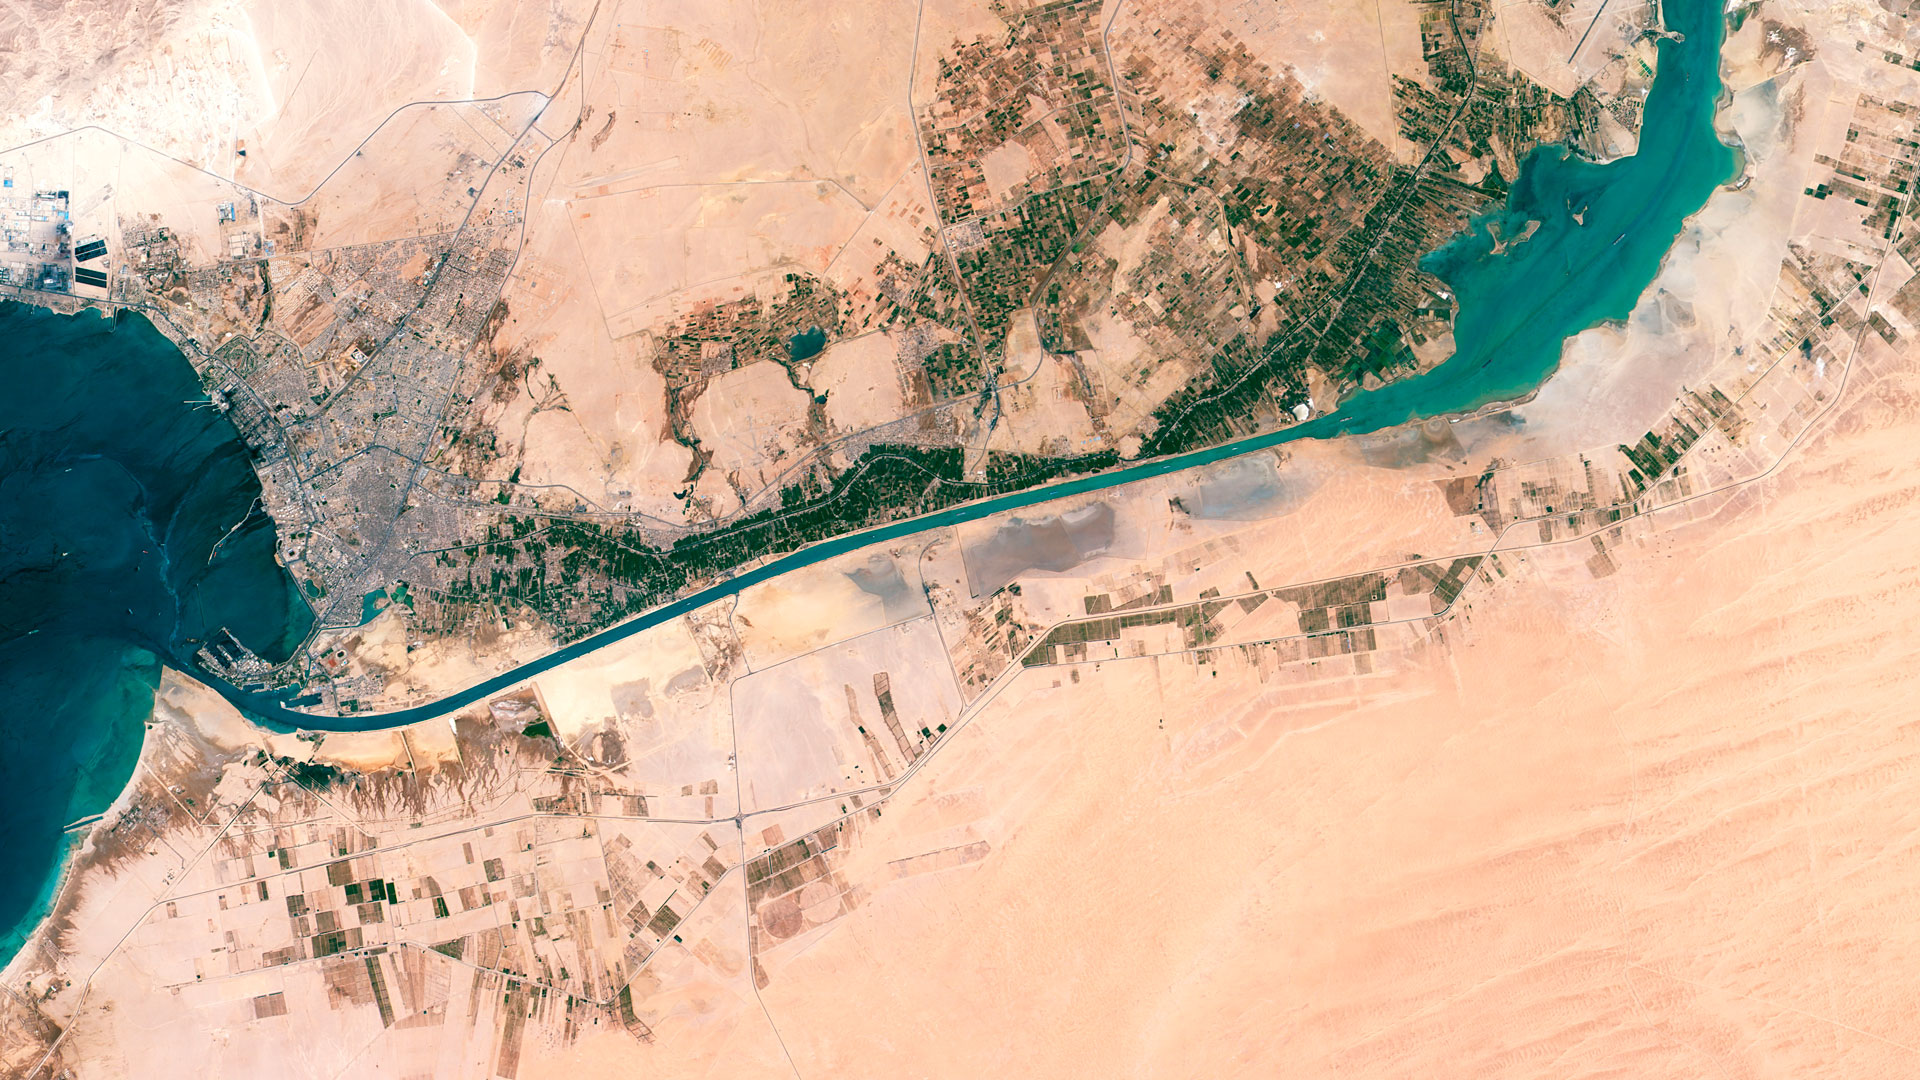 Filesuez canal egypt satellite viewg wikimedia commons filesuez canal egypt satellite viewg gumiabroncs